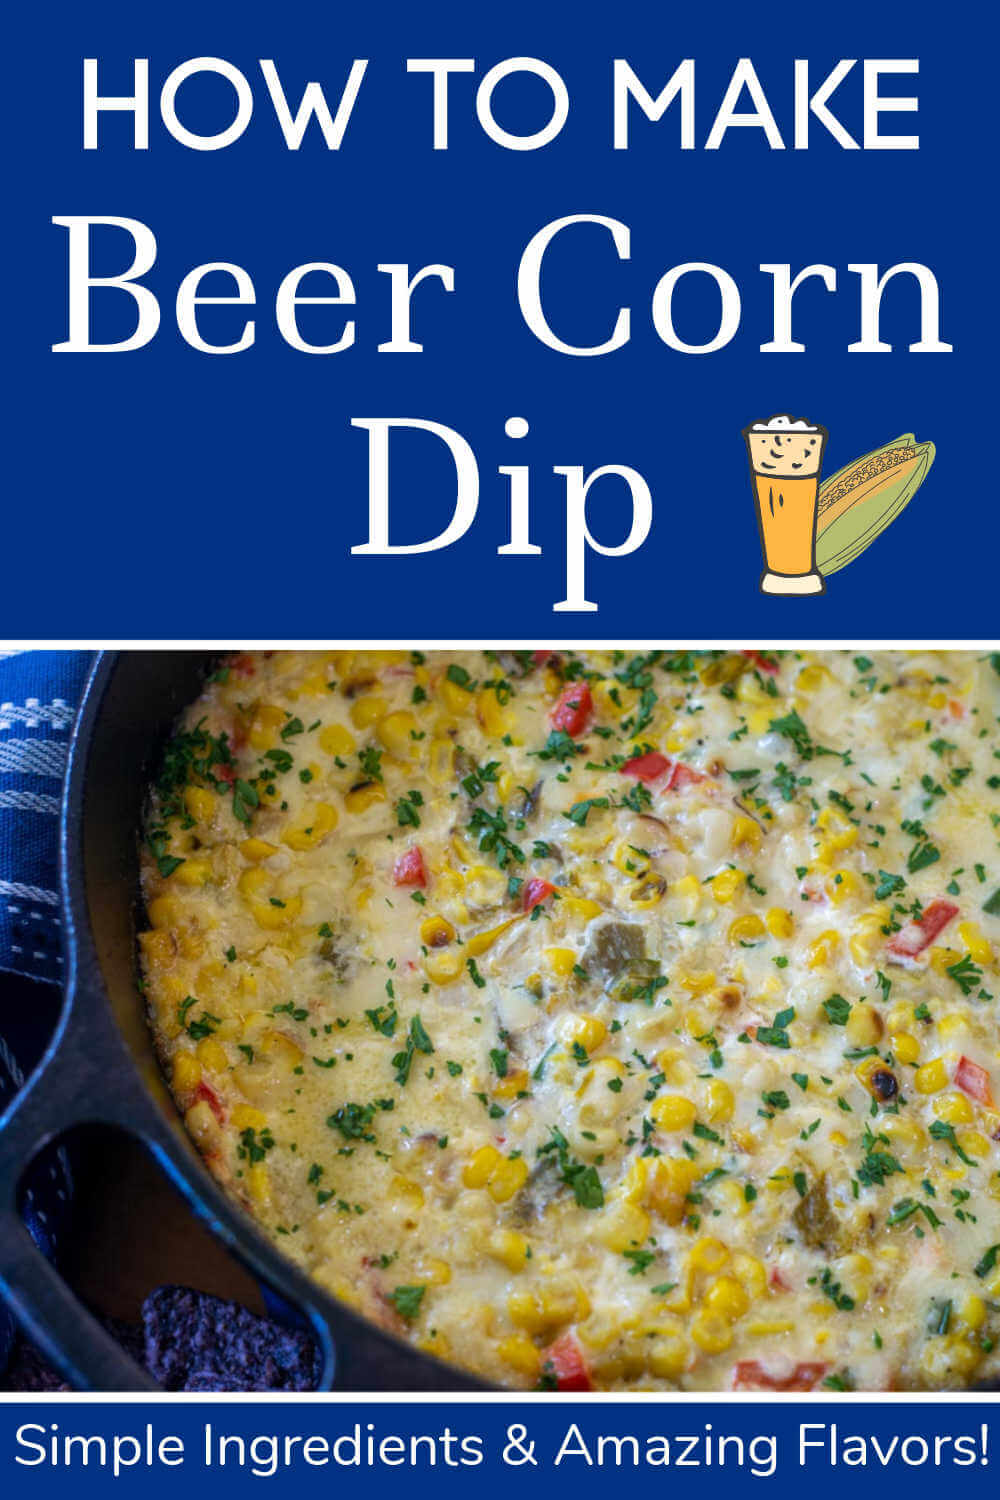 Beer Corn Crack Dip